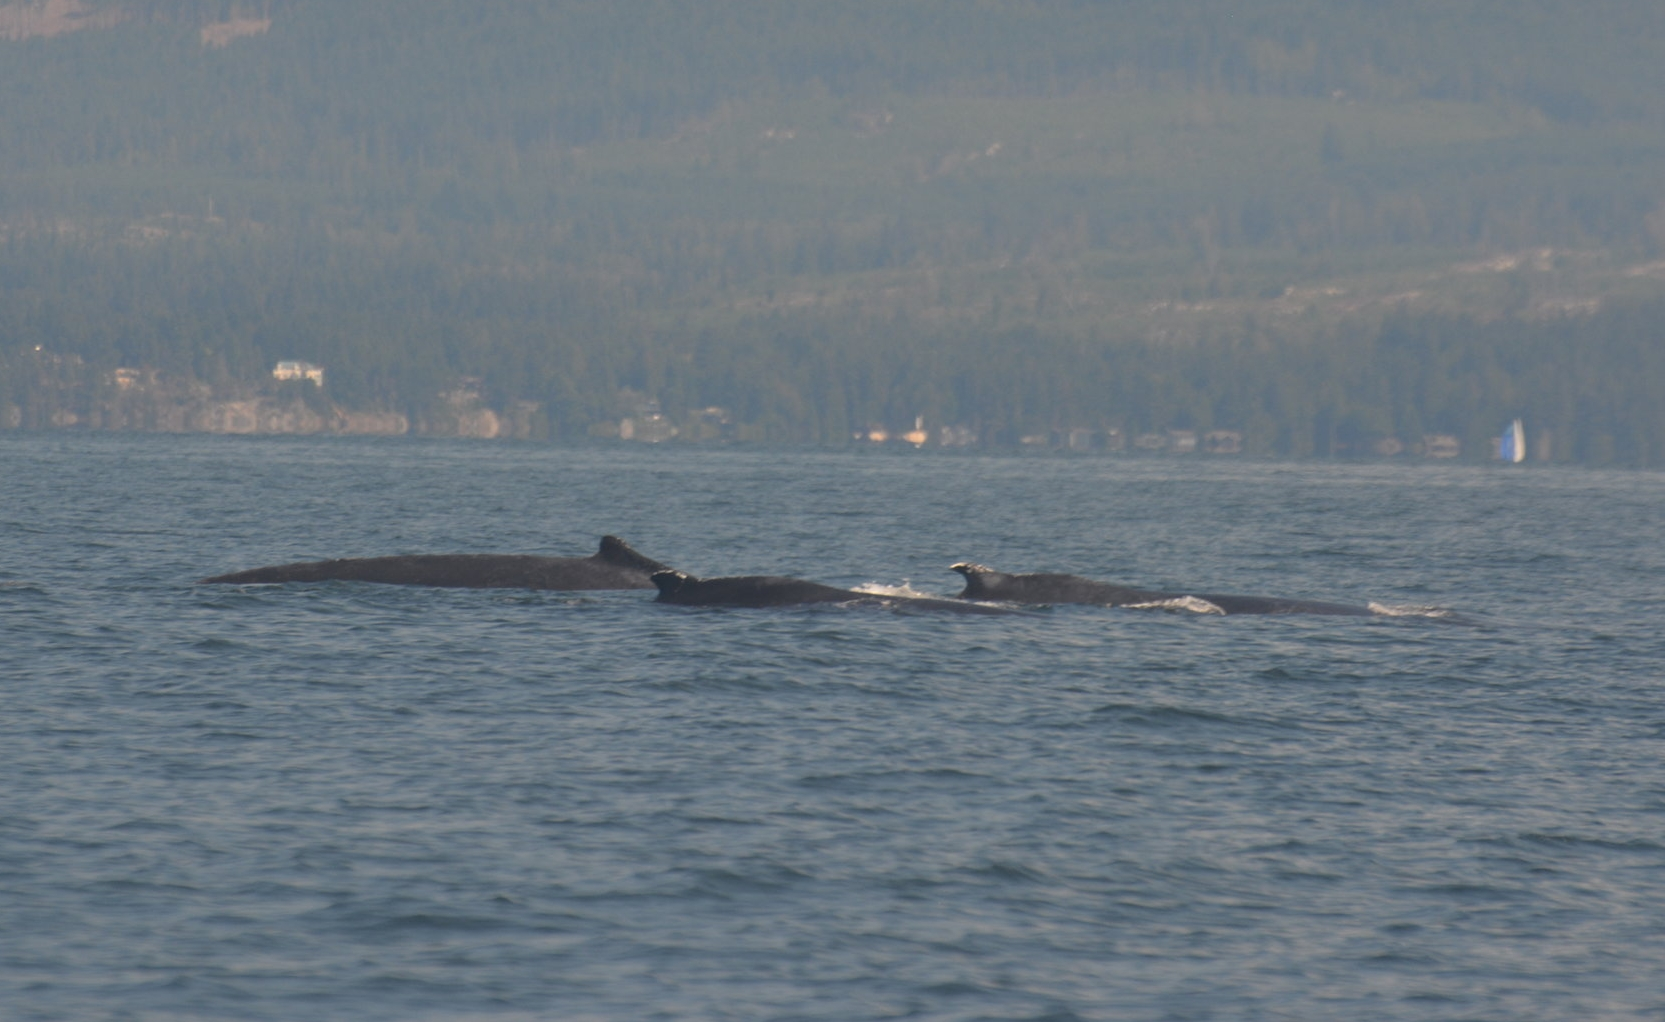 Three humpbacks surfacing together! Zorro, Split Fluke, and Heather. Photo by Val Watson